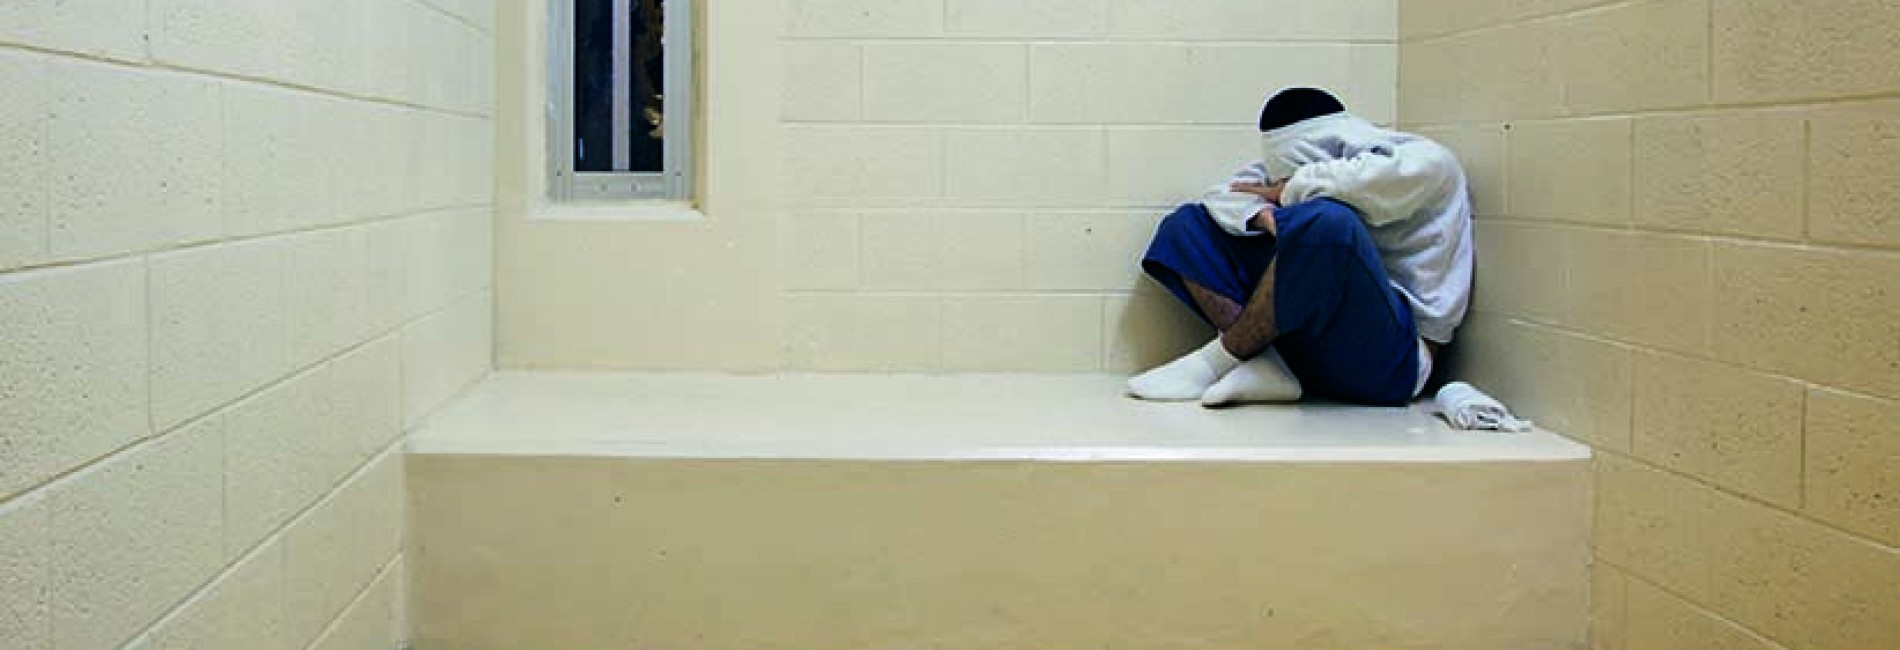 A juvenile in solitary confinement. (Richard Ross/www.juvenile-in-justice.com)